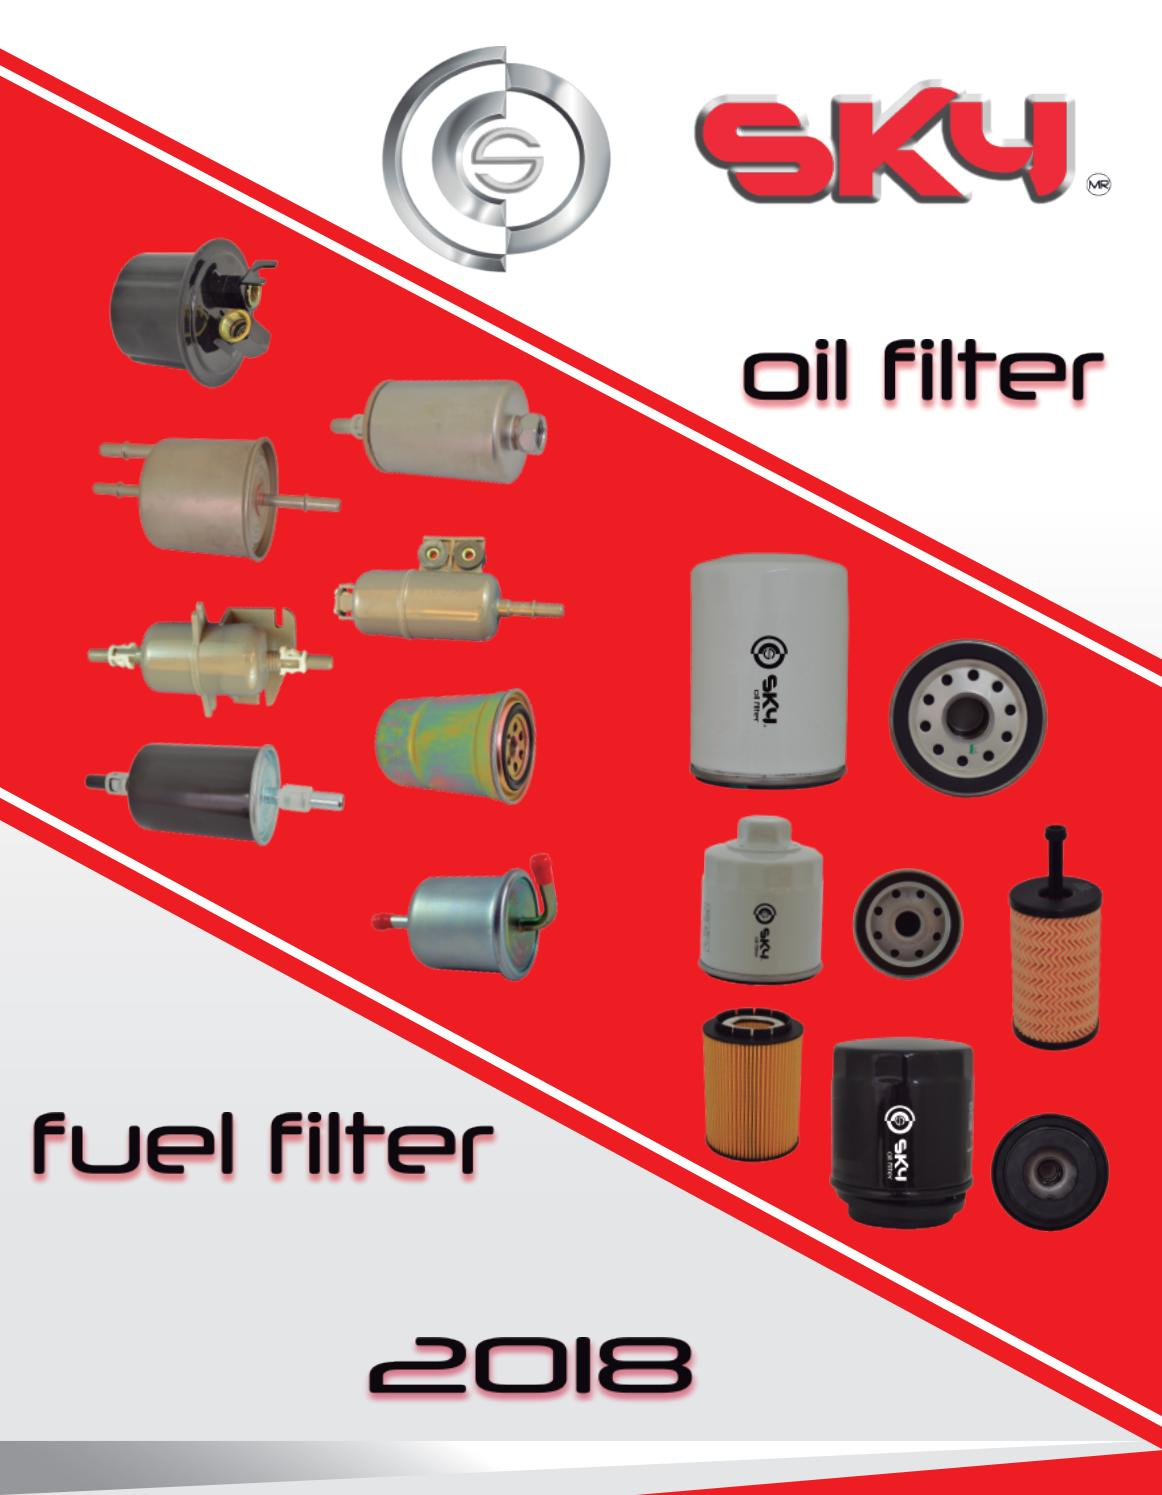 Catalogo Linea Completa Sky Filter By Mvdo7 Issuu Sienna Fuel